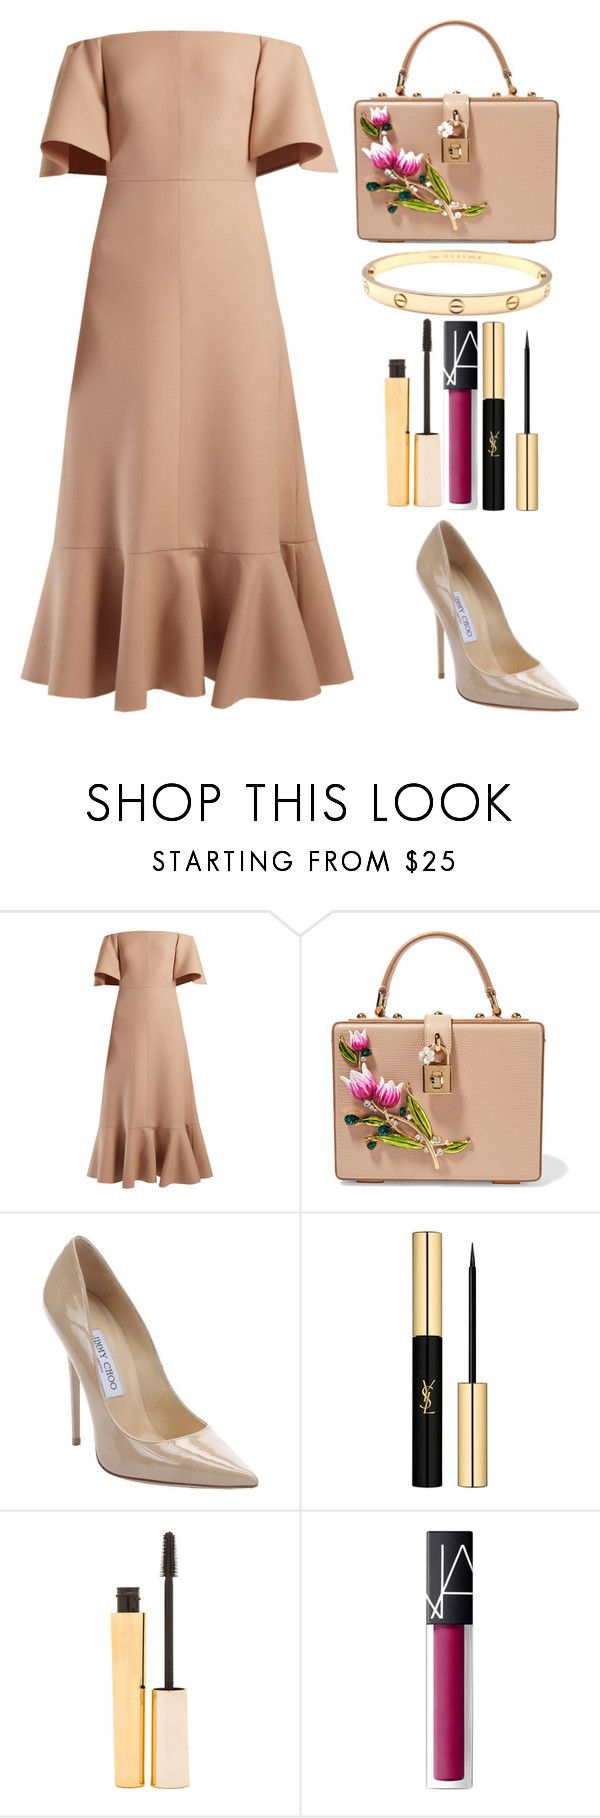 """Style #392"" by maksimchuk-vika ❤ liked on Polyvore featuring Valentino, Dolce&Gabbana, Jimmy Choo, Yves Saint Laurent, Stila, NARS Cosmetics and Cartier"